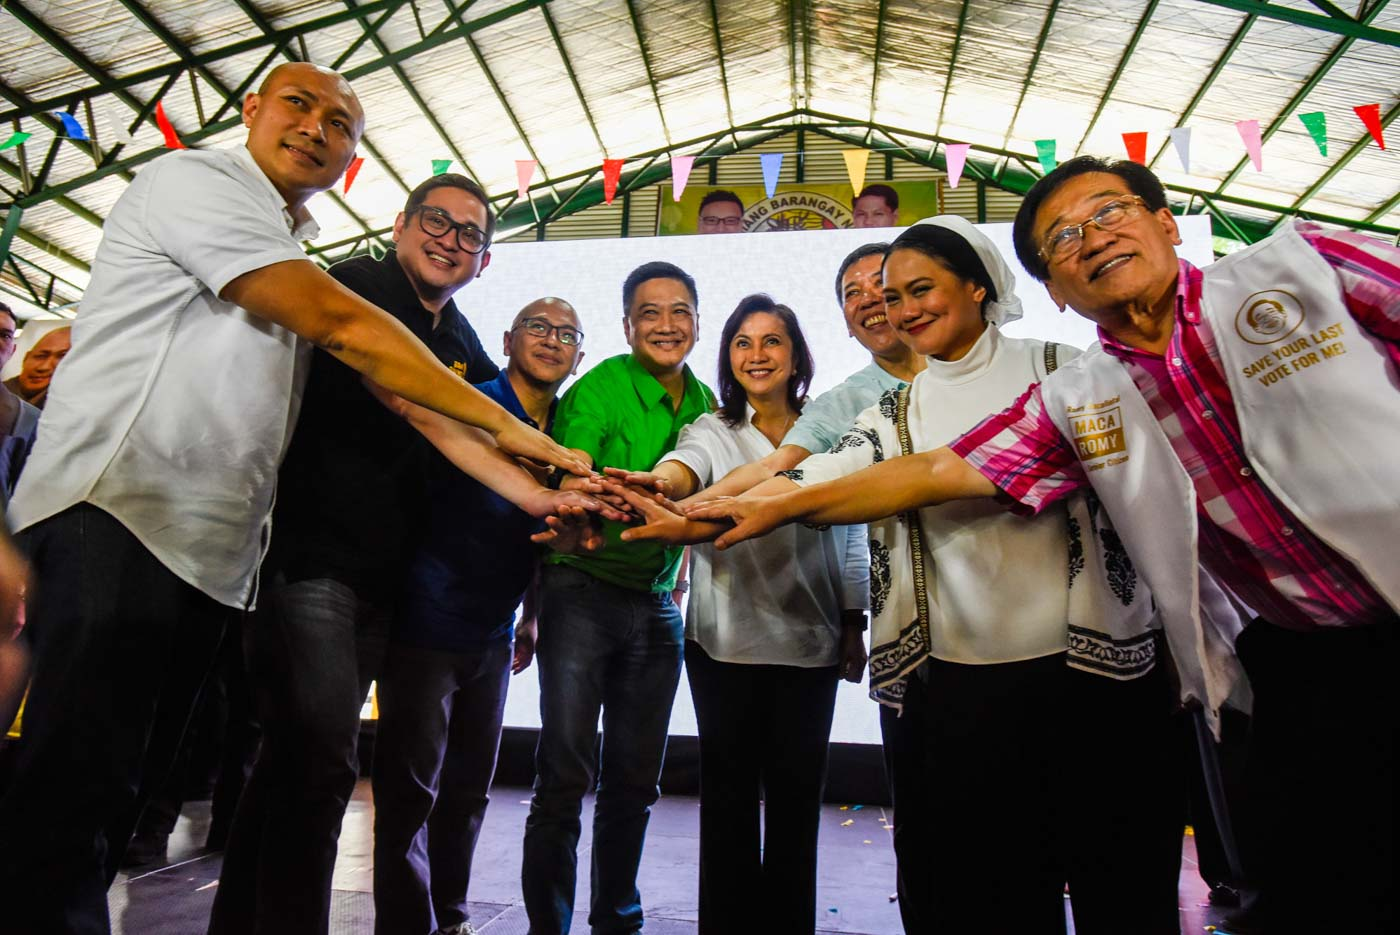 OPPOSITION. The election lawyer is part of the opposition's senatorial slate. Photo taken in Marikina on October 24, 2018, at the slate's launch. File photo by Maria Tan/Rappler